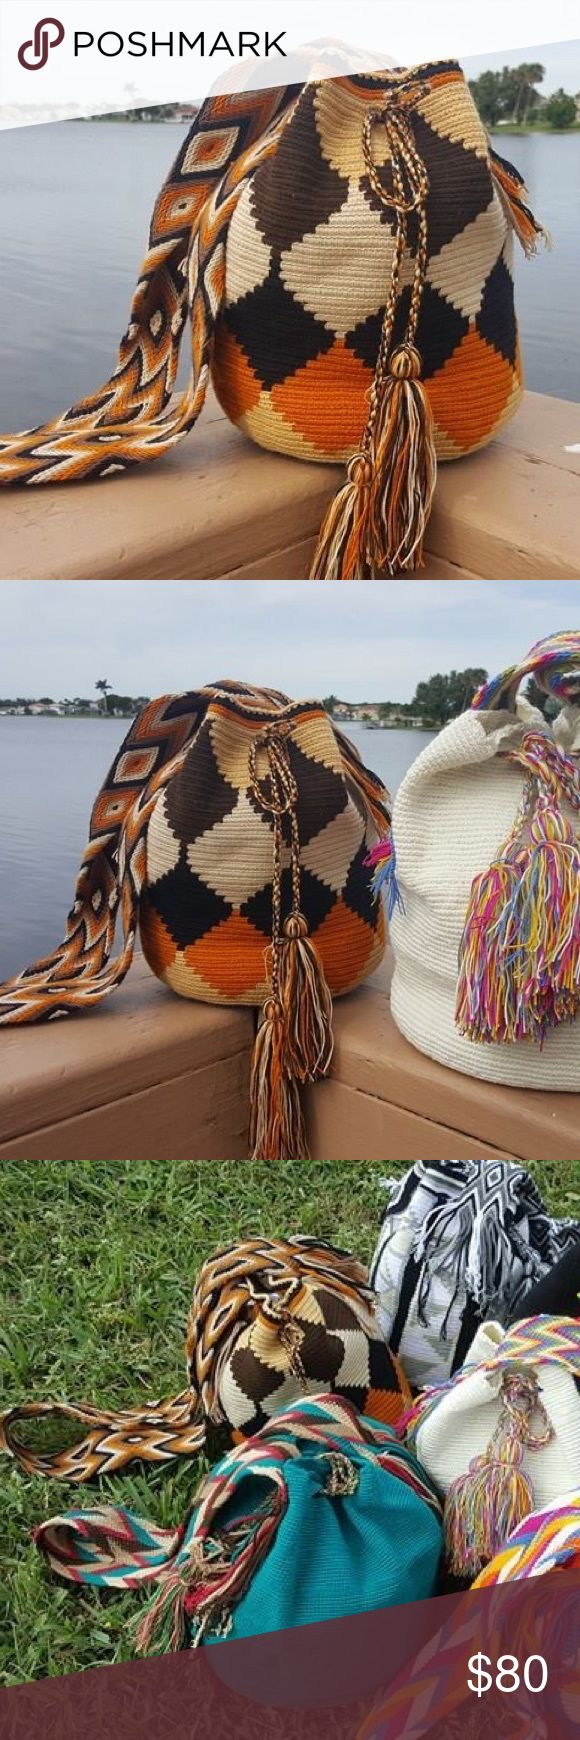 Ethnic wayuu ️handmade bag   Black Friday SALE  // Authentic new luxury mochila bag. ️handmade by Indian wayuu community of Colombia. Each bag is one of a kind and made with absolute skills and dedication. Each bag take around 20 days to make. Shakira, Katie perry and Monaco princes use wayuu bags Bags Shoulder Bags